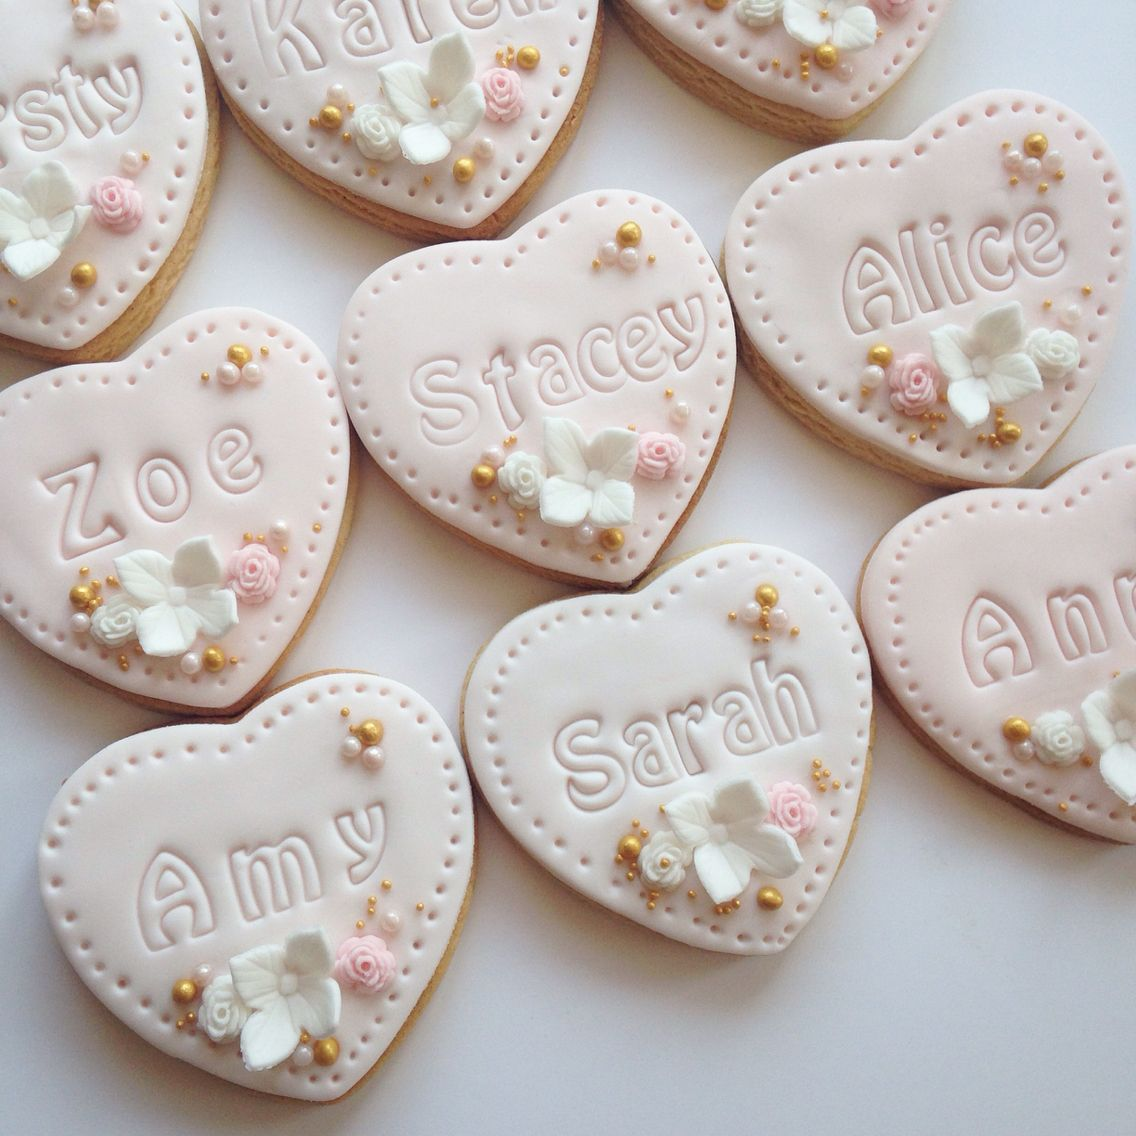 Blush & Ivory wedding cookie favours | Cookies | Pinterest | Cookie ...